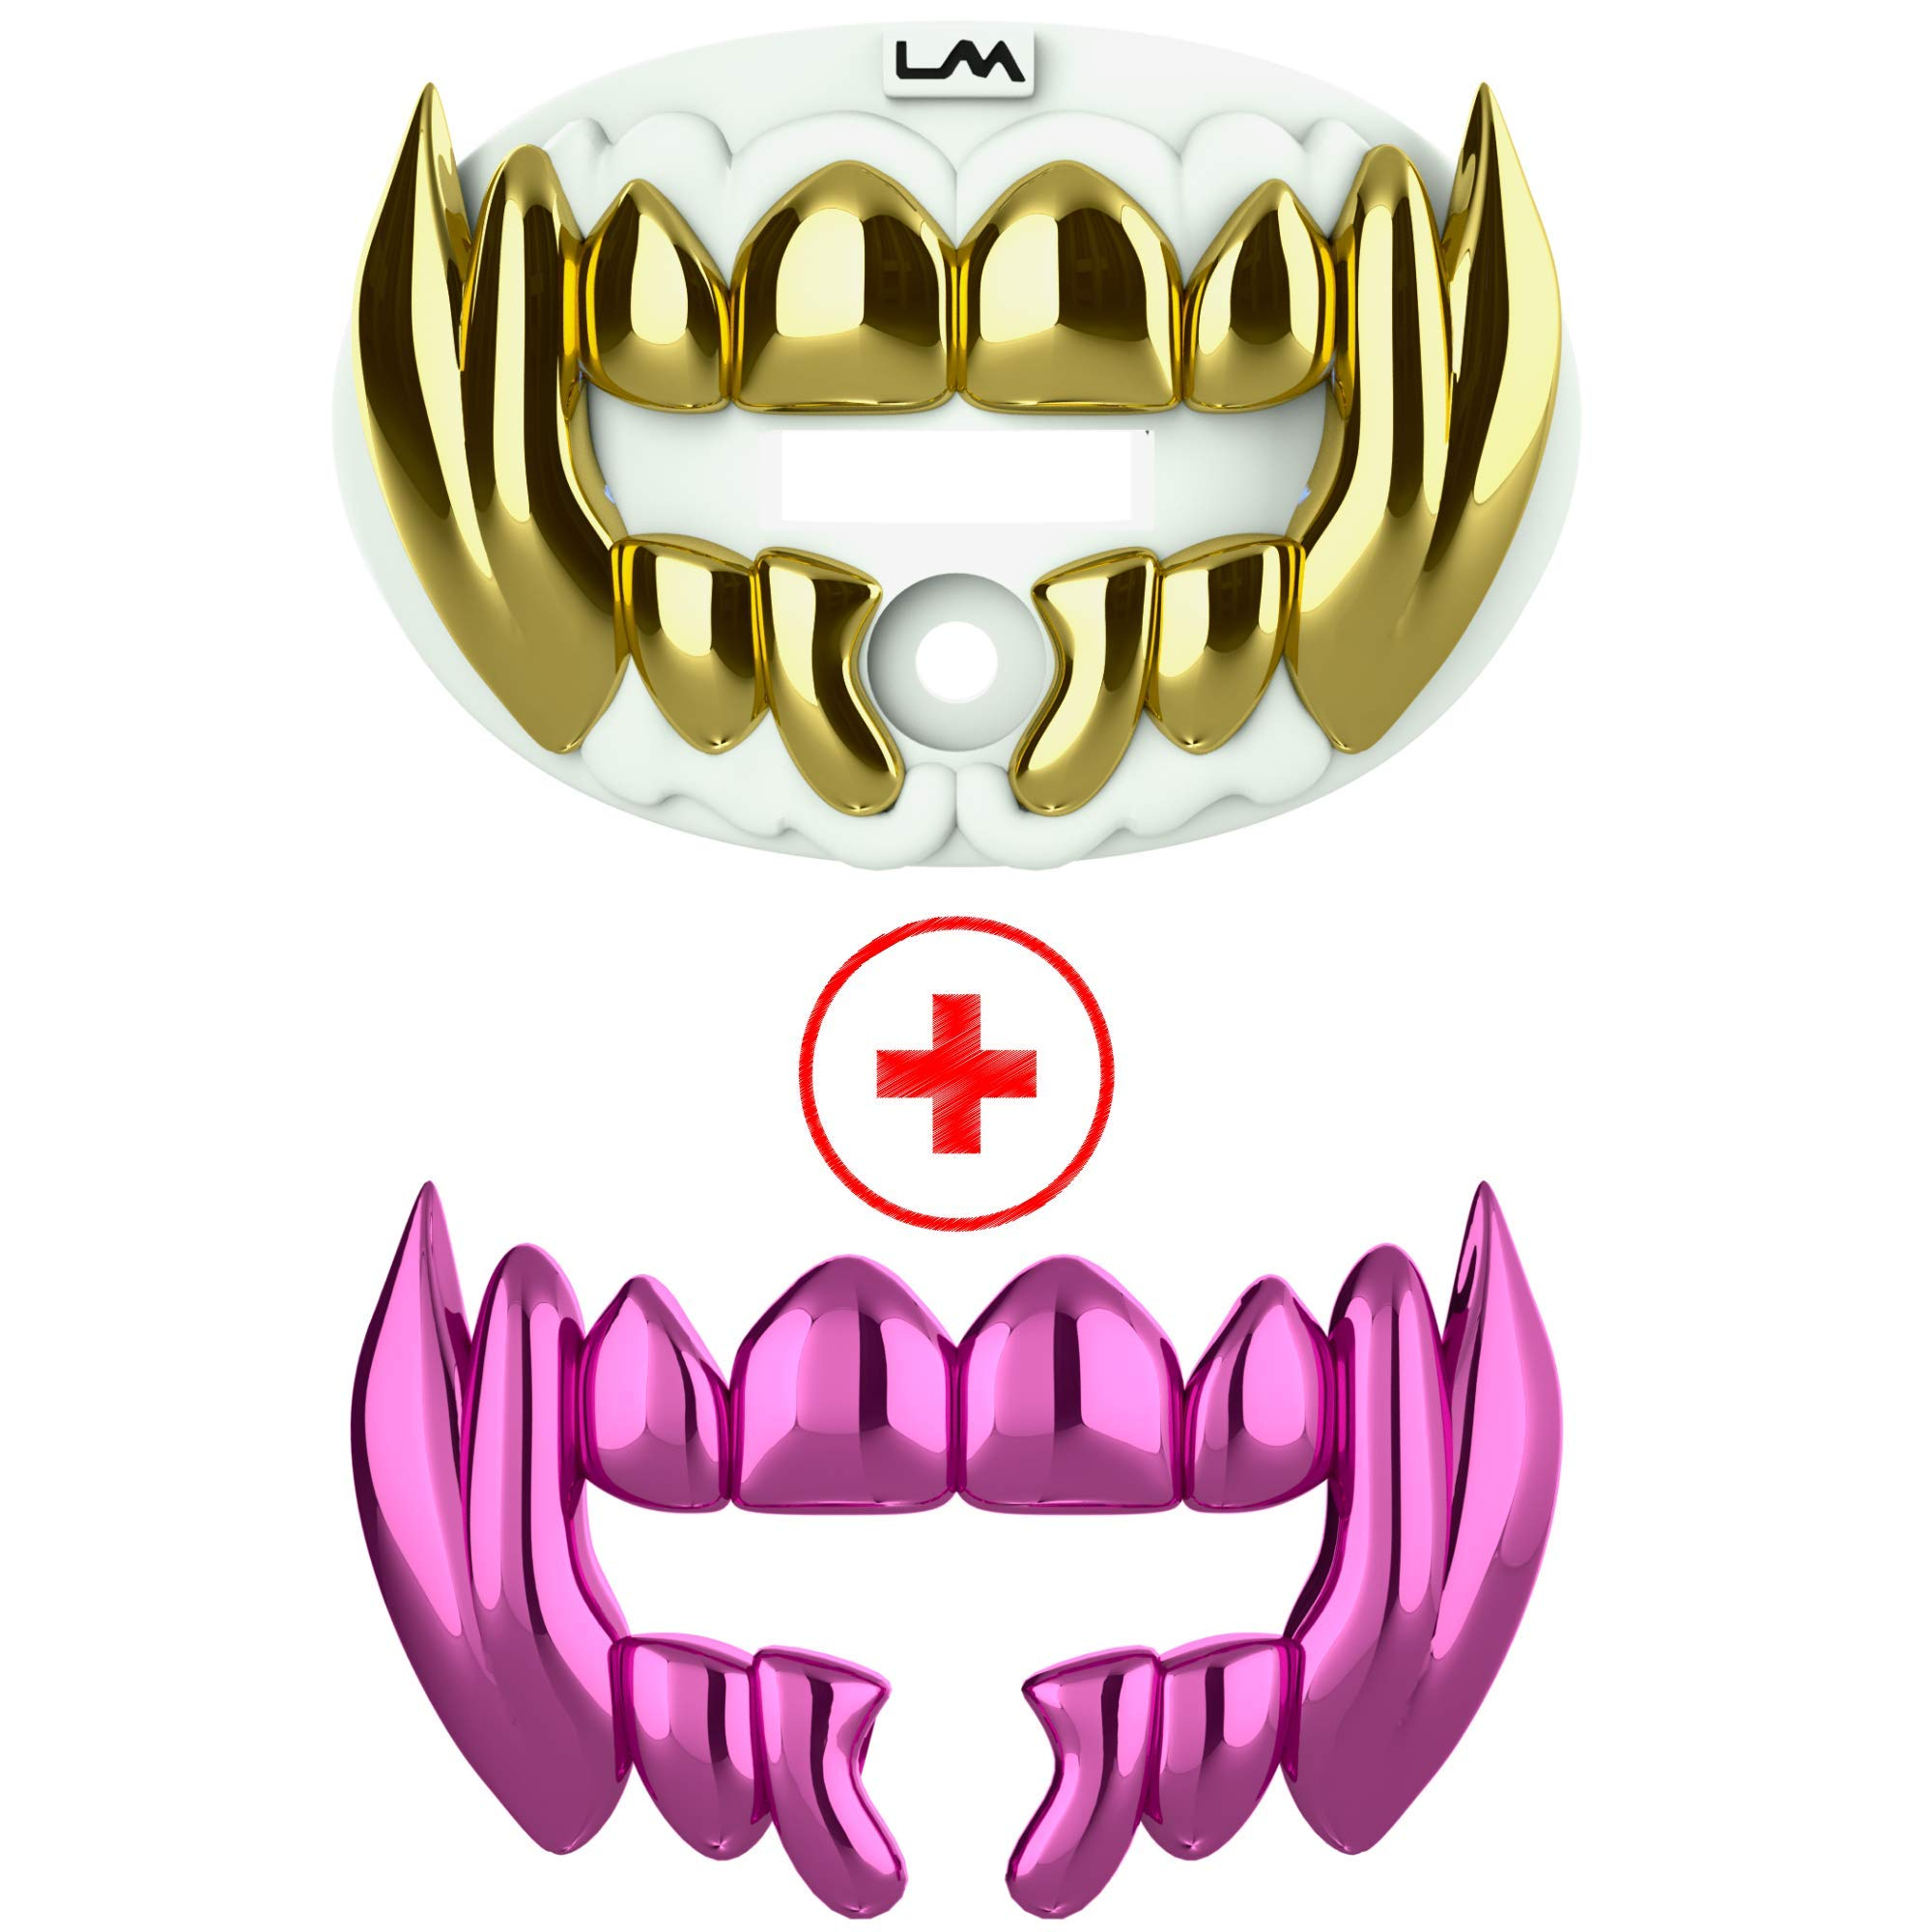 Loudmouth Football Mouth Guard | 3D Beast Chrome Adult and Youth Mouth Guard | Mouth Piece for Sports | Maximum Air Flow Mouth Guards (3D Beast - Chrome White/Gold + Pink) by Loud Mouth